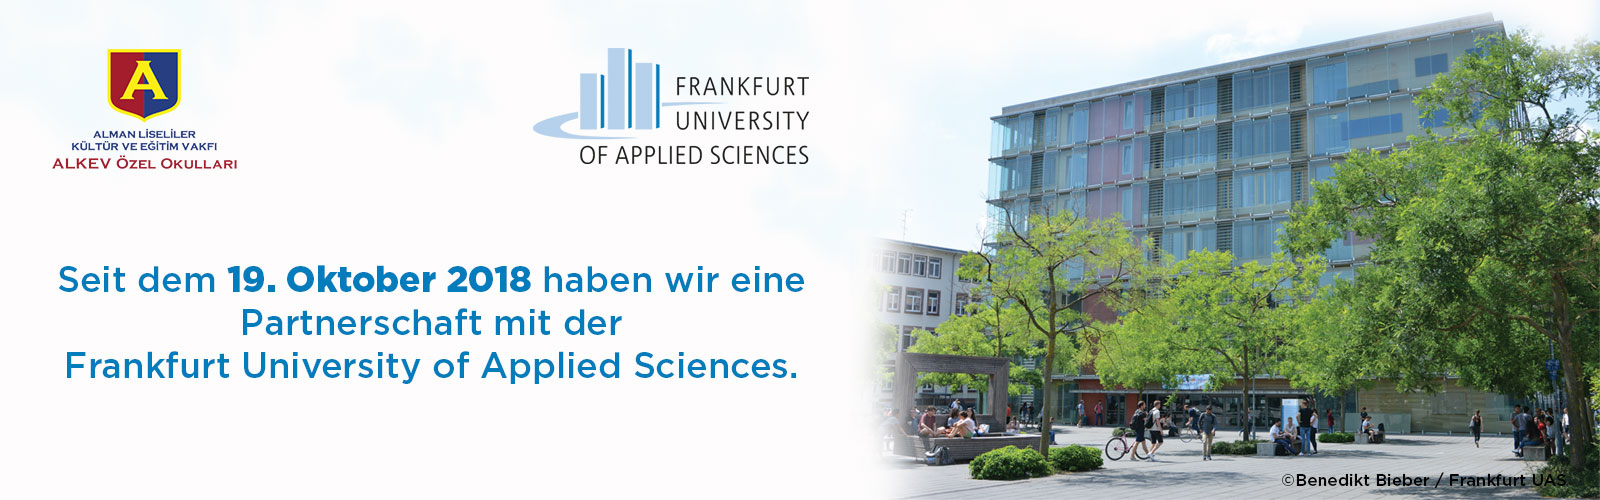 Frankfurt University of Applied Sciences Partnerschaft